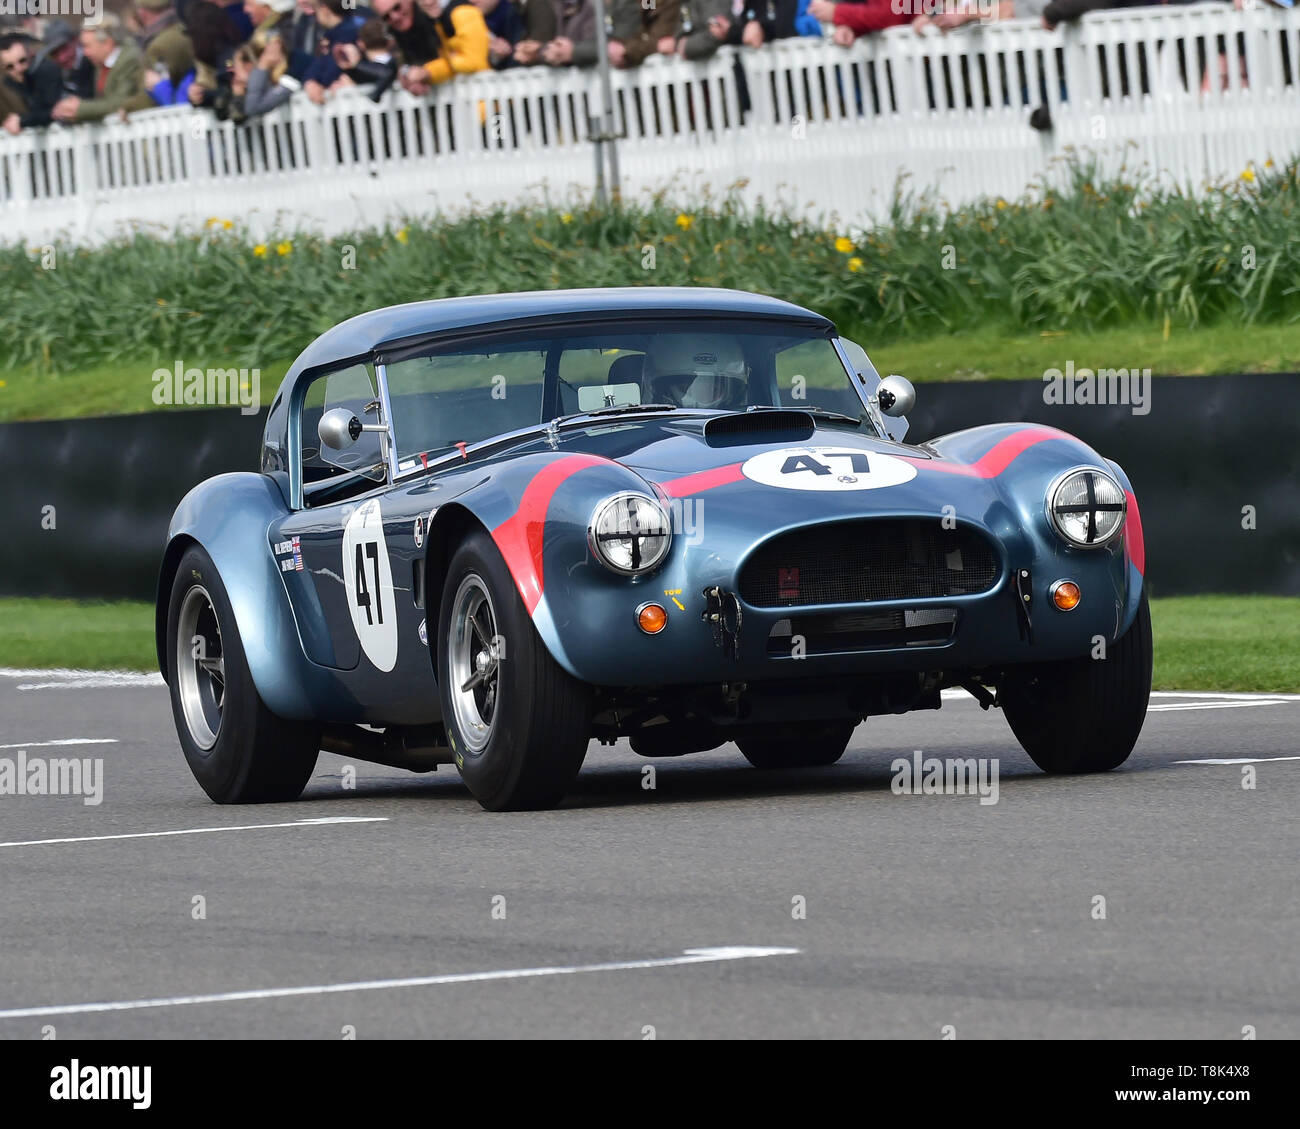 Jim Farley, Bill Shepherd, Shelby Cobra, Graham Hill Trophy, Closed cockpit GT cars, Prototype cars, Spirit of the RAC TT Races 1960-1964, 77th Member - Stock Image